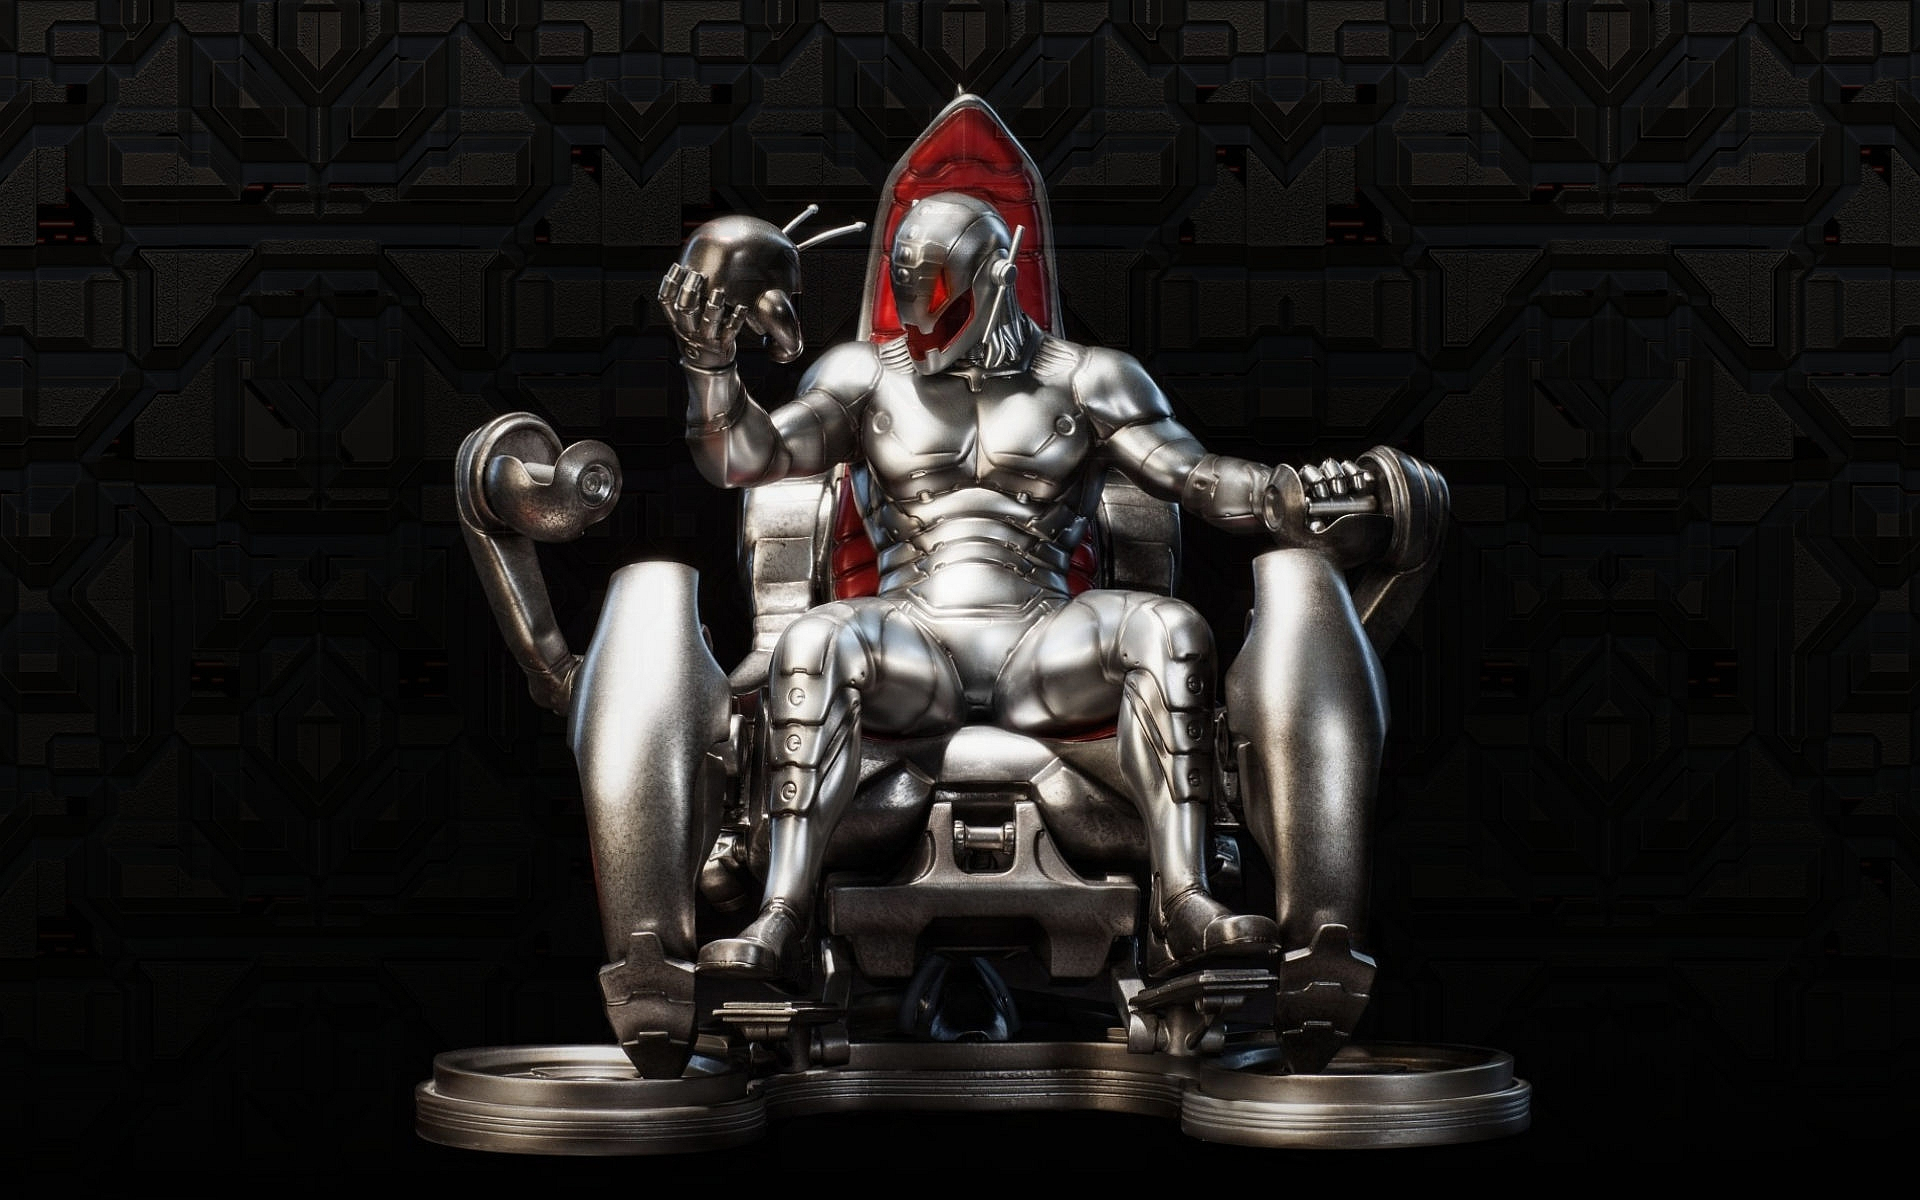 3276548-ultron-wallpaper-avengers-2-age-of-ultron-brought-to-life-by-infinity-stone